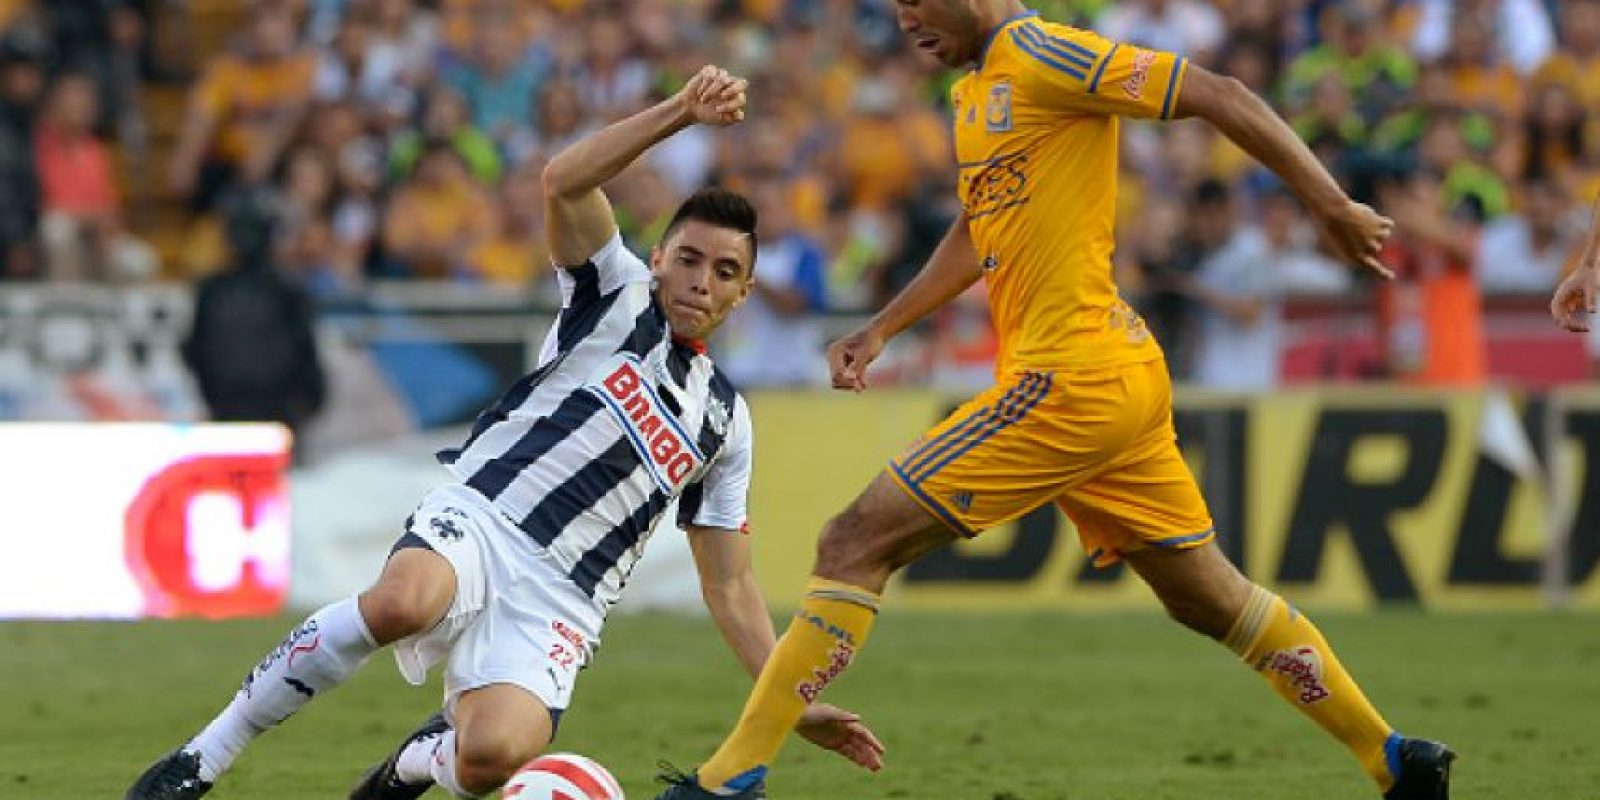 Monterrey (46.9 MDE )vs. Tigres (50.2 MDE) = 97.1 MDE Foto: Getty Images